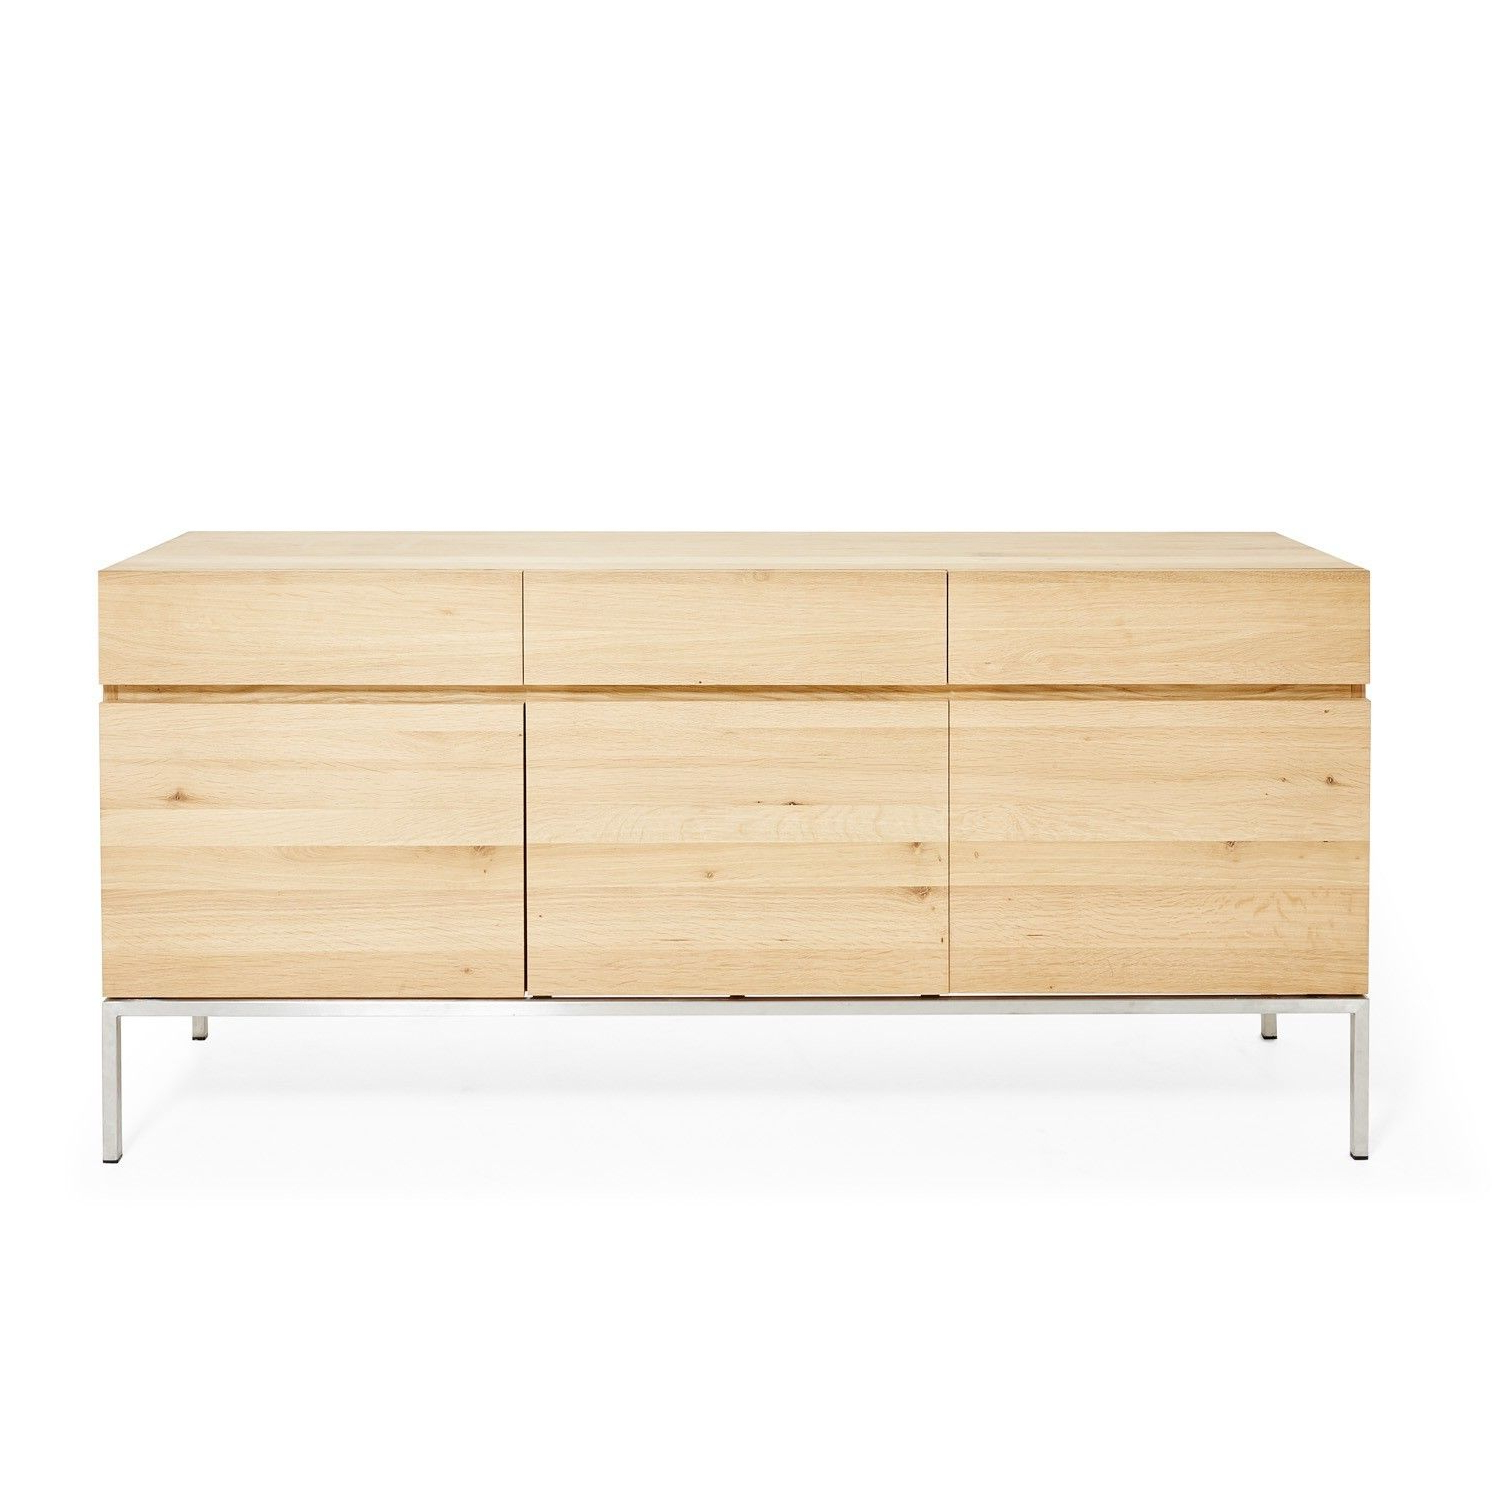 Well Liked Oil Pale Finish 3 Door Sideboards Intended For Natural Grain & Steel Sideboards At Abc Home & Carpet (Gallery 13 of 20)